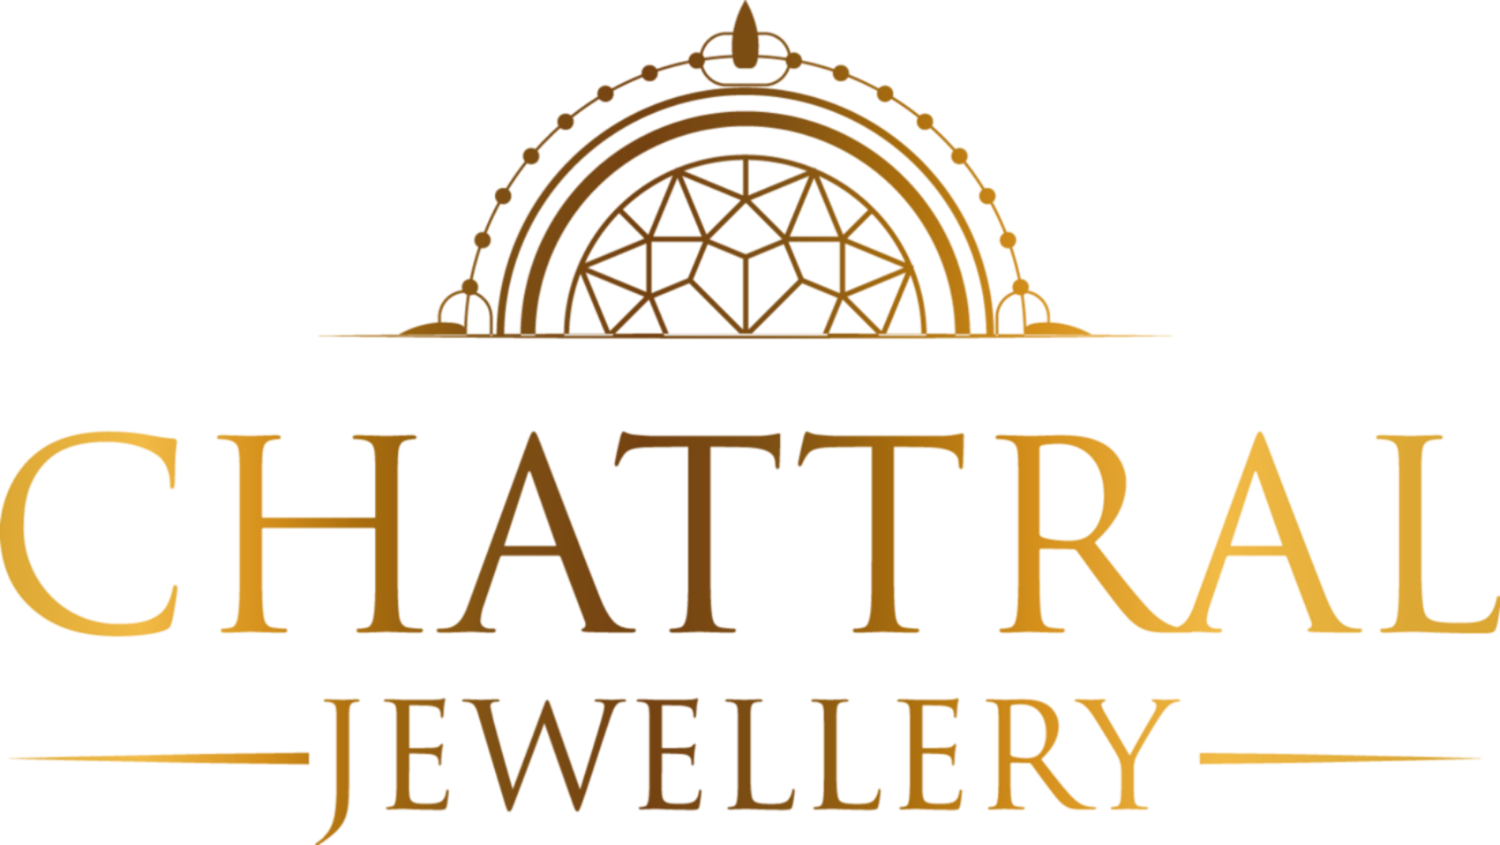 Chattral Jewellery